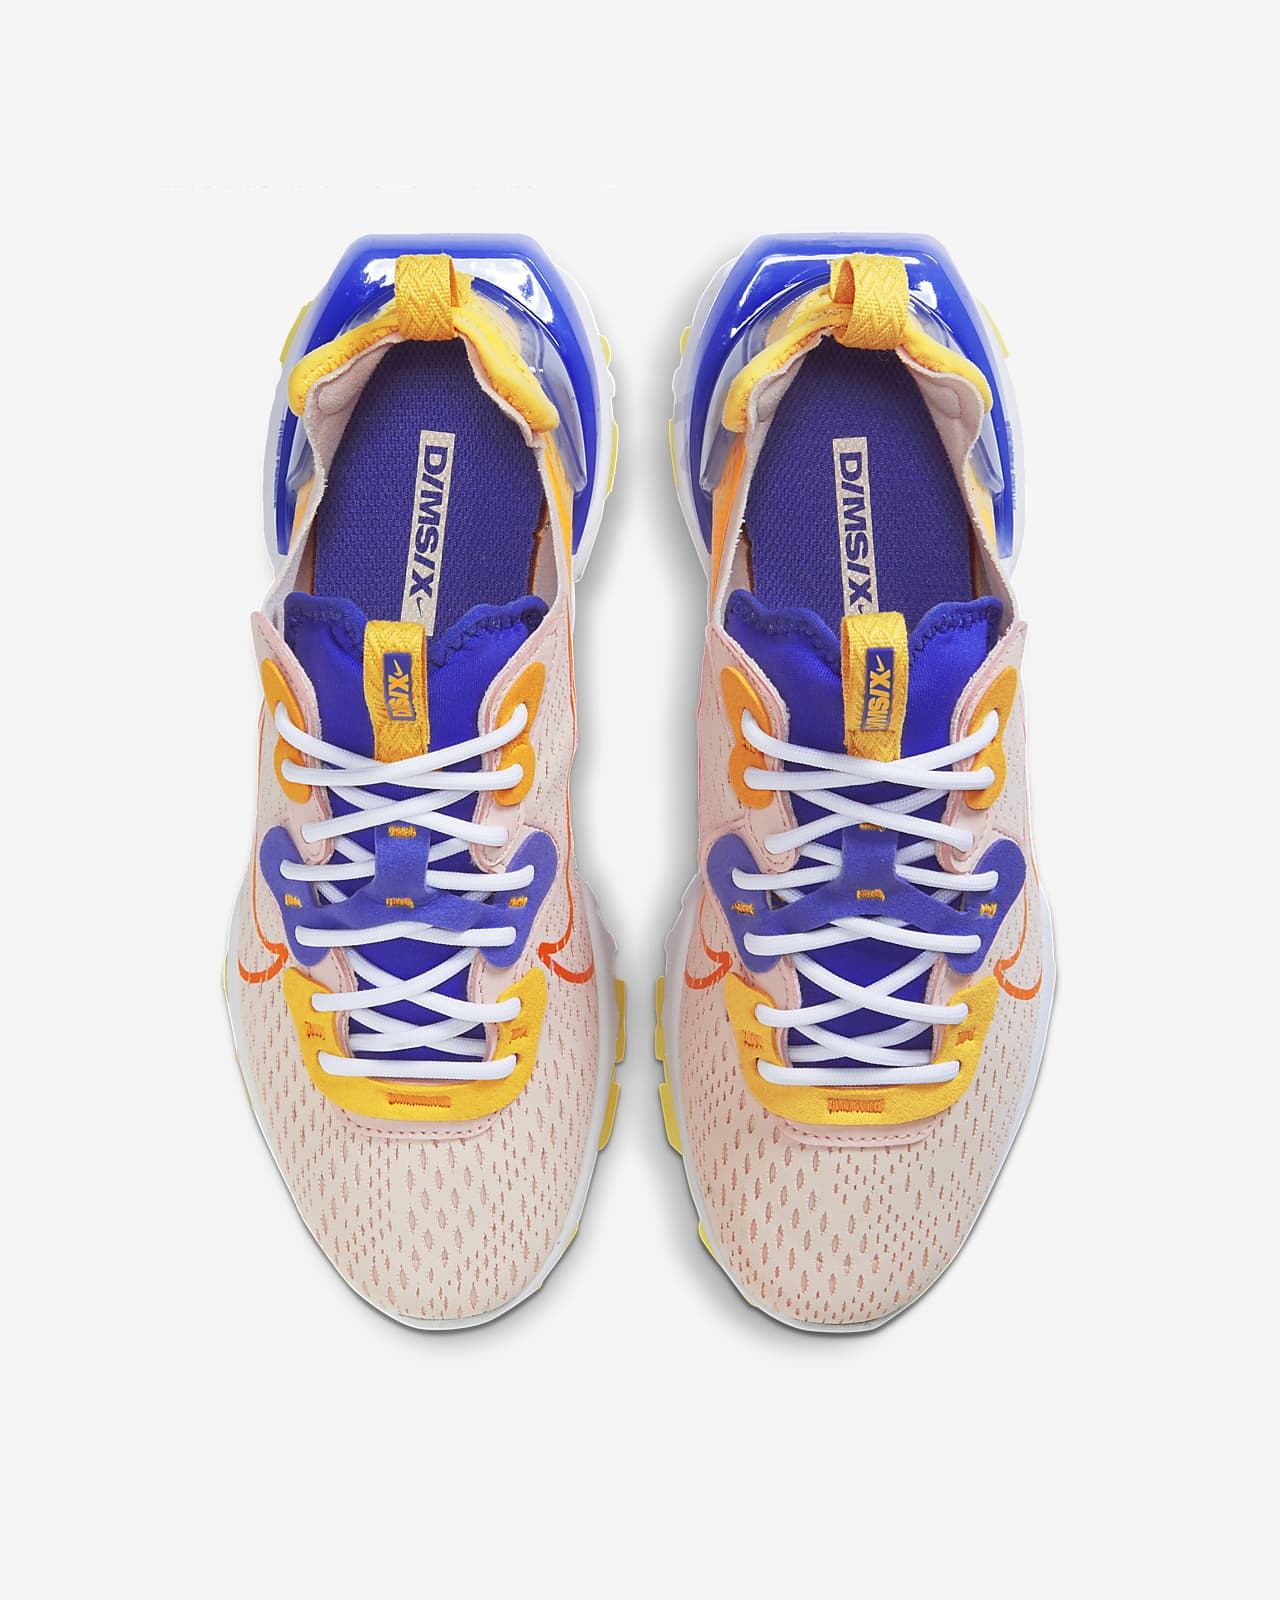 Chaussure Nike React Vision pour Femme